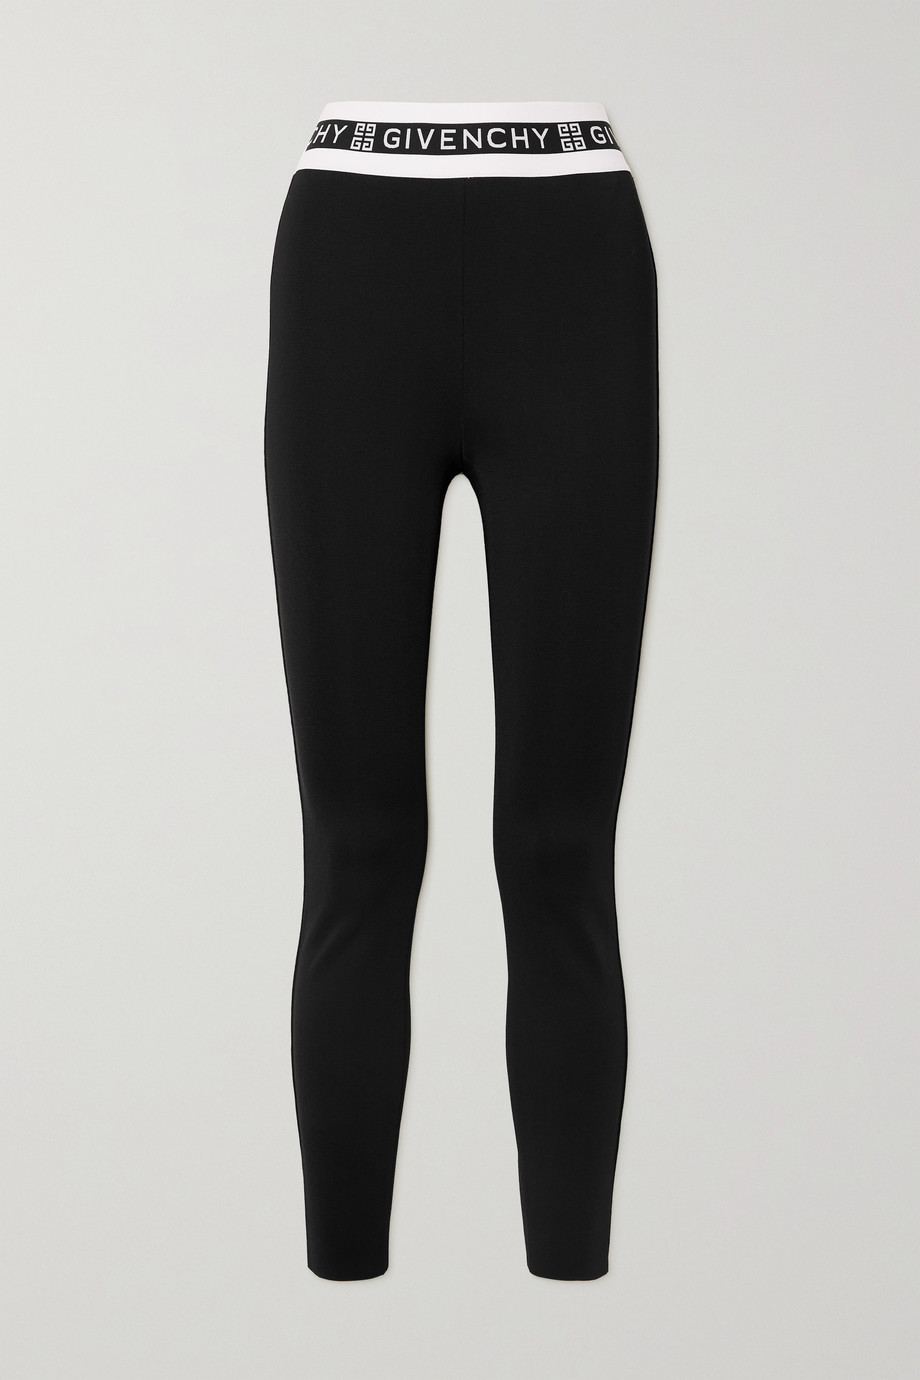 Givenchy Jacquard-trimmed jersey leggings